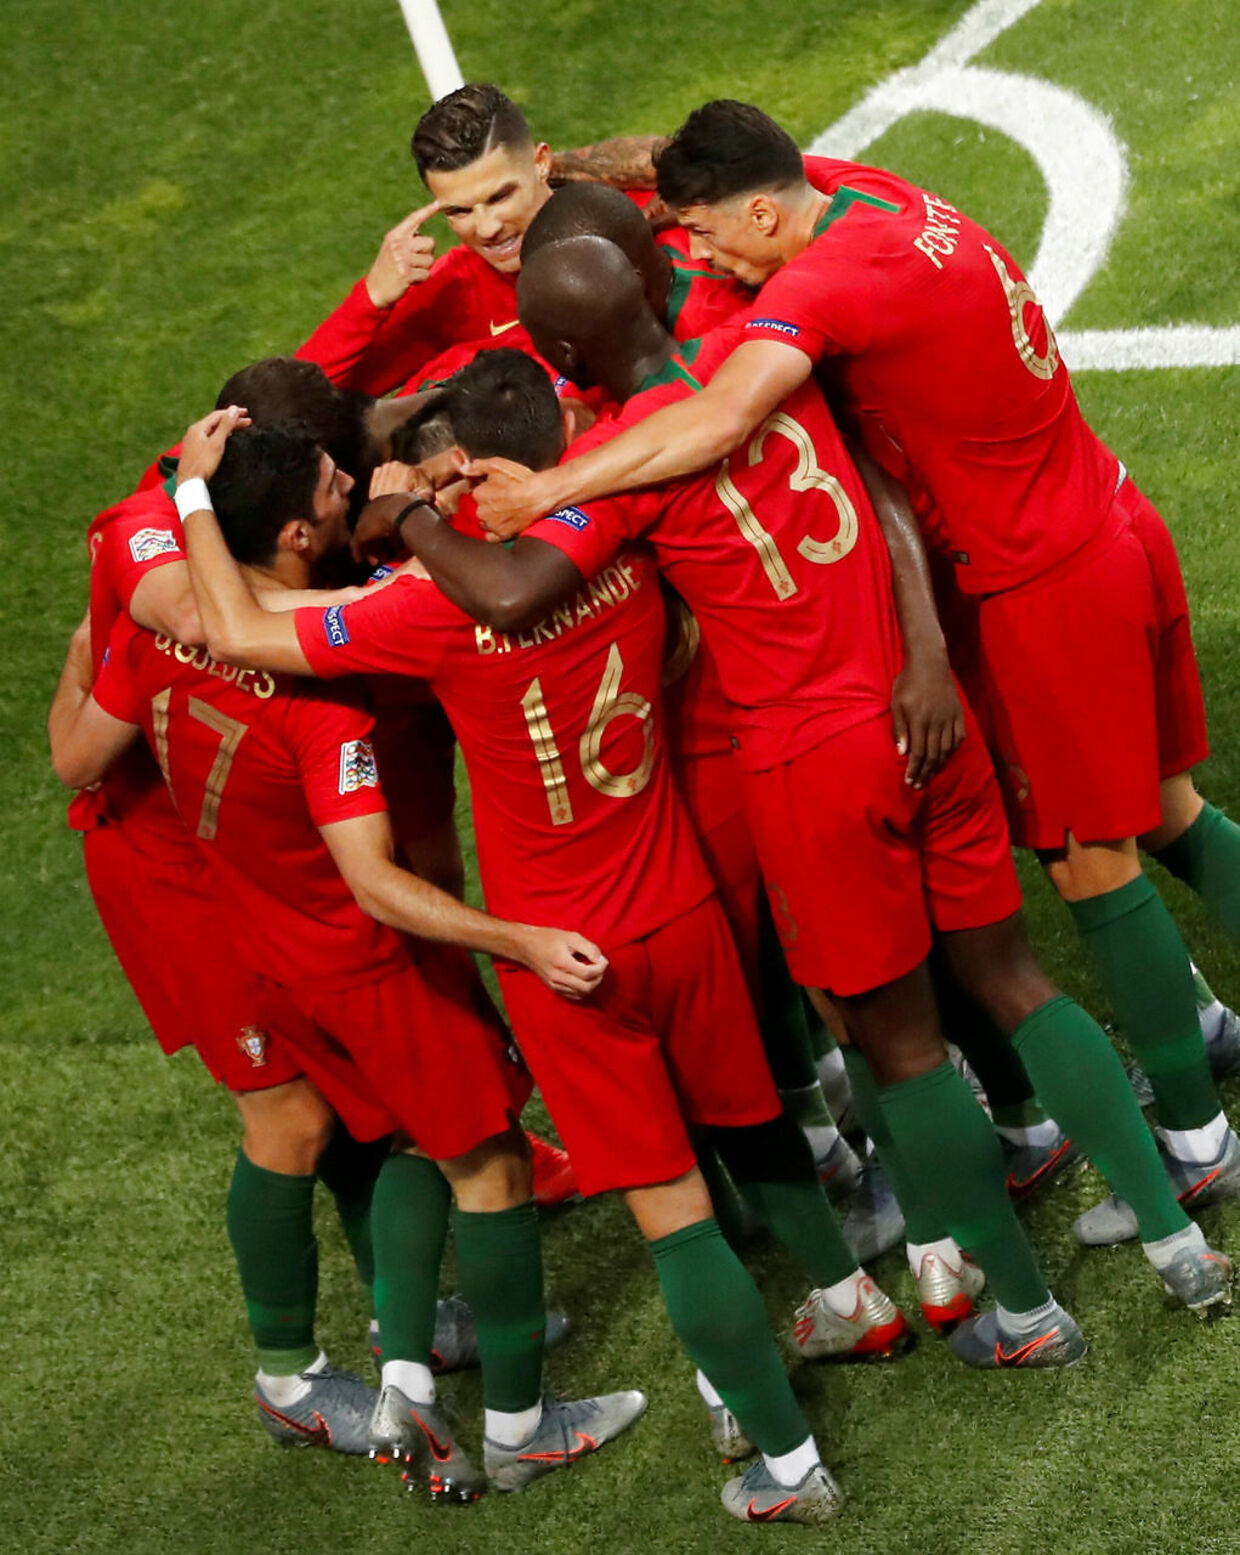 Soccer Football - UEFA Nations League Final - Portugal v Netherlands - Estadio do Dragao, Porto, Portugal - June 9, 2019 Portugal's Goncalo Guedes celebrates scoring their first goal with Cristiano Ronaldo and team mates REUTERS/Susana Vera